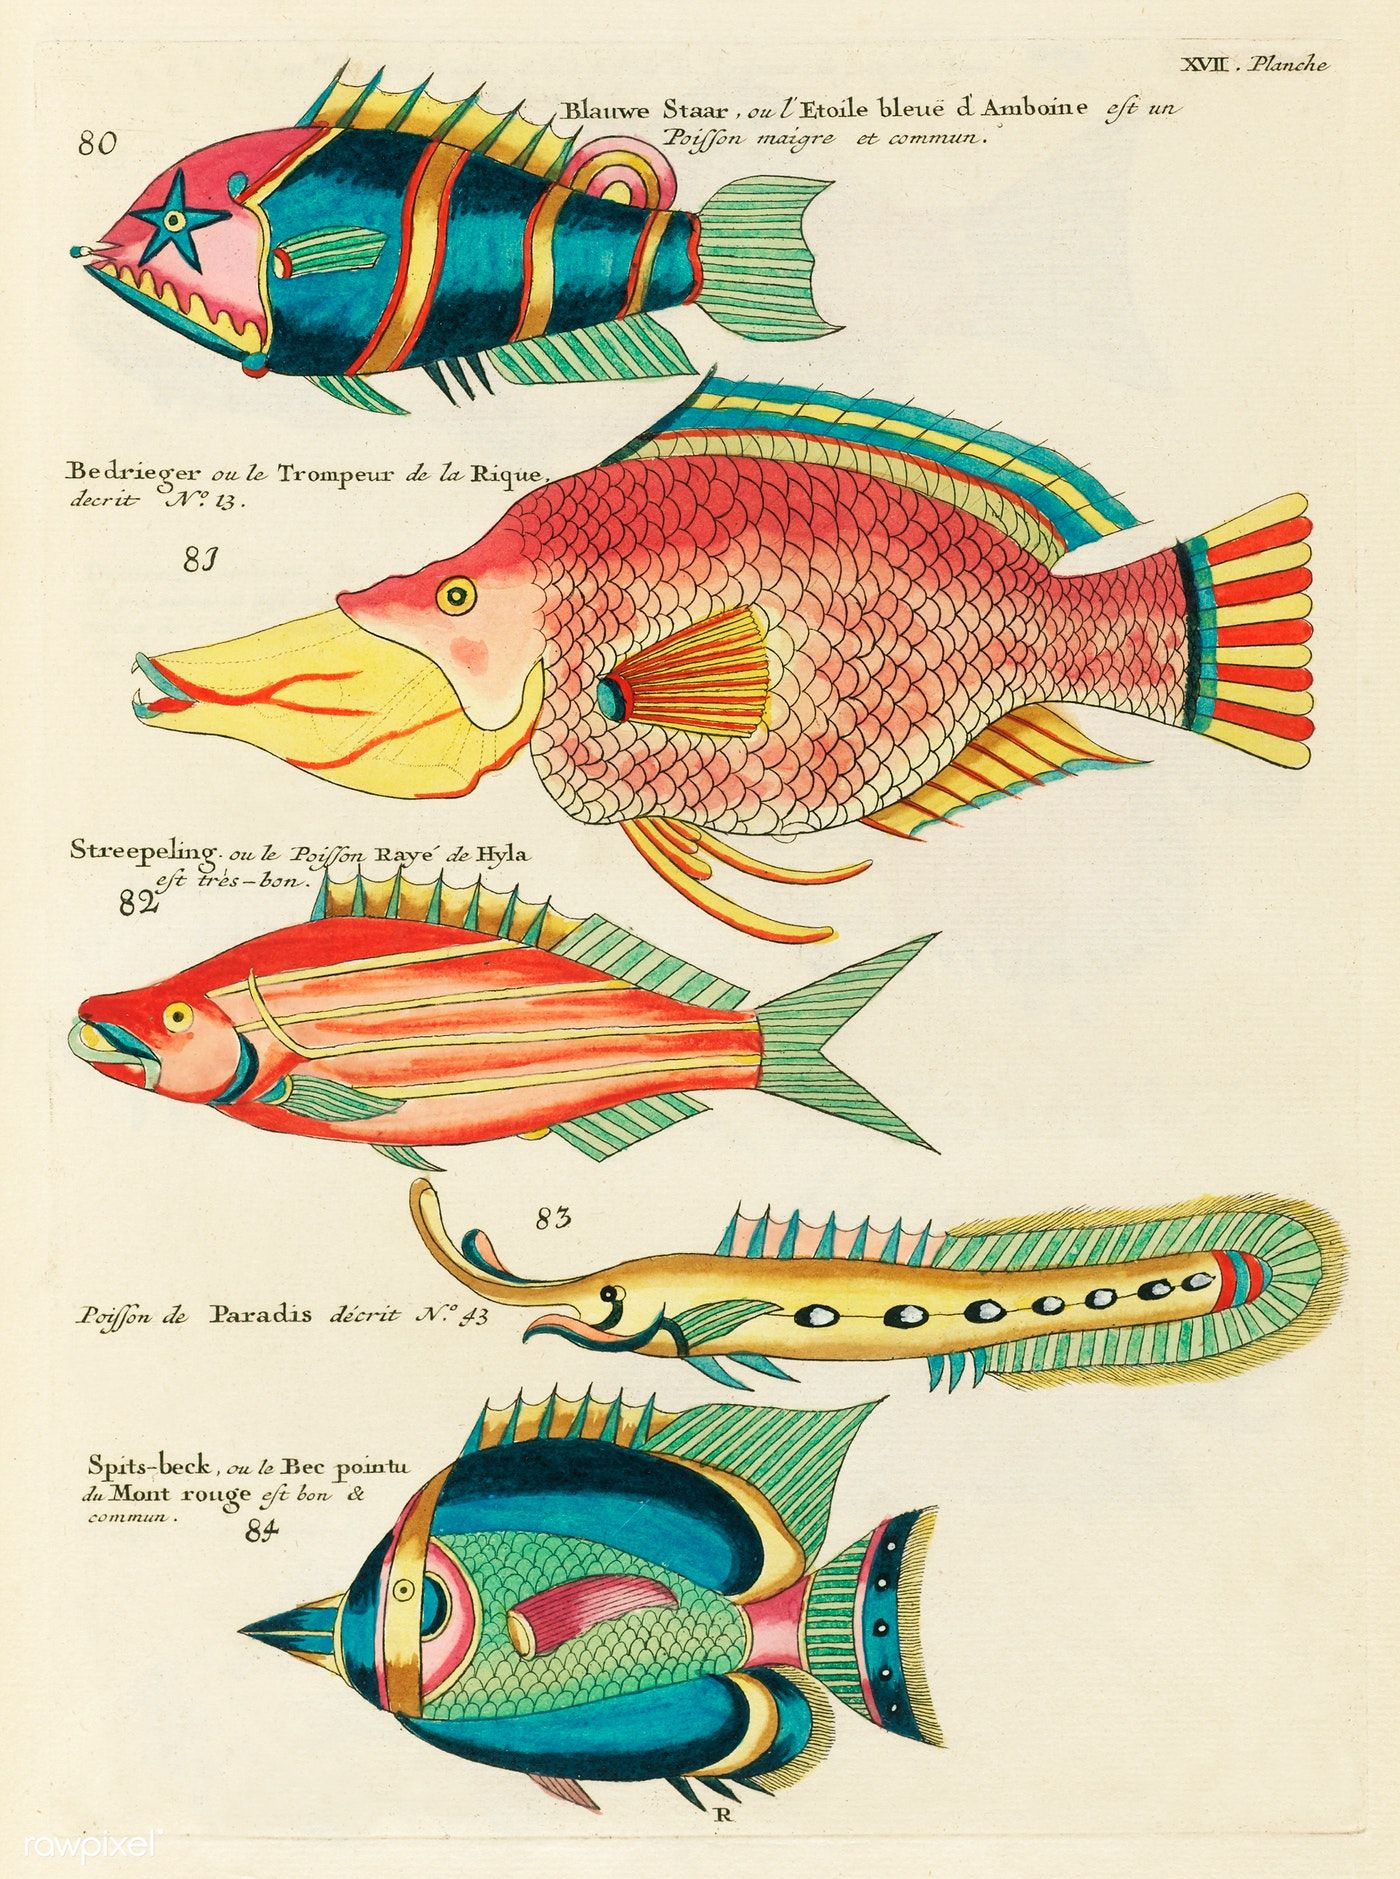 Colourful And Surreal Illustrations Of Fishes Found In